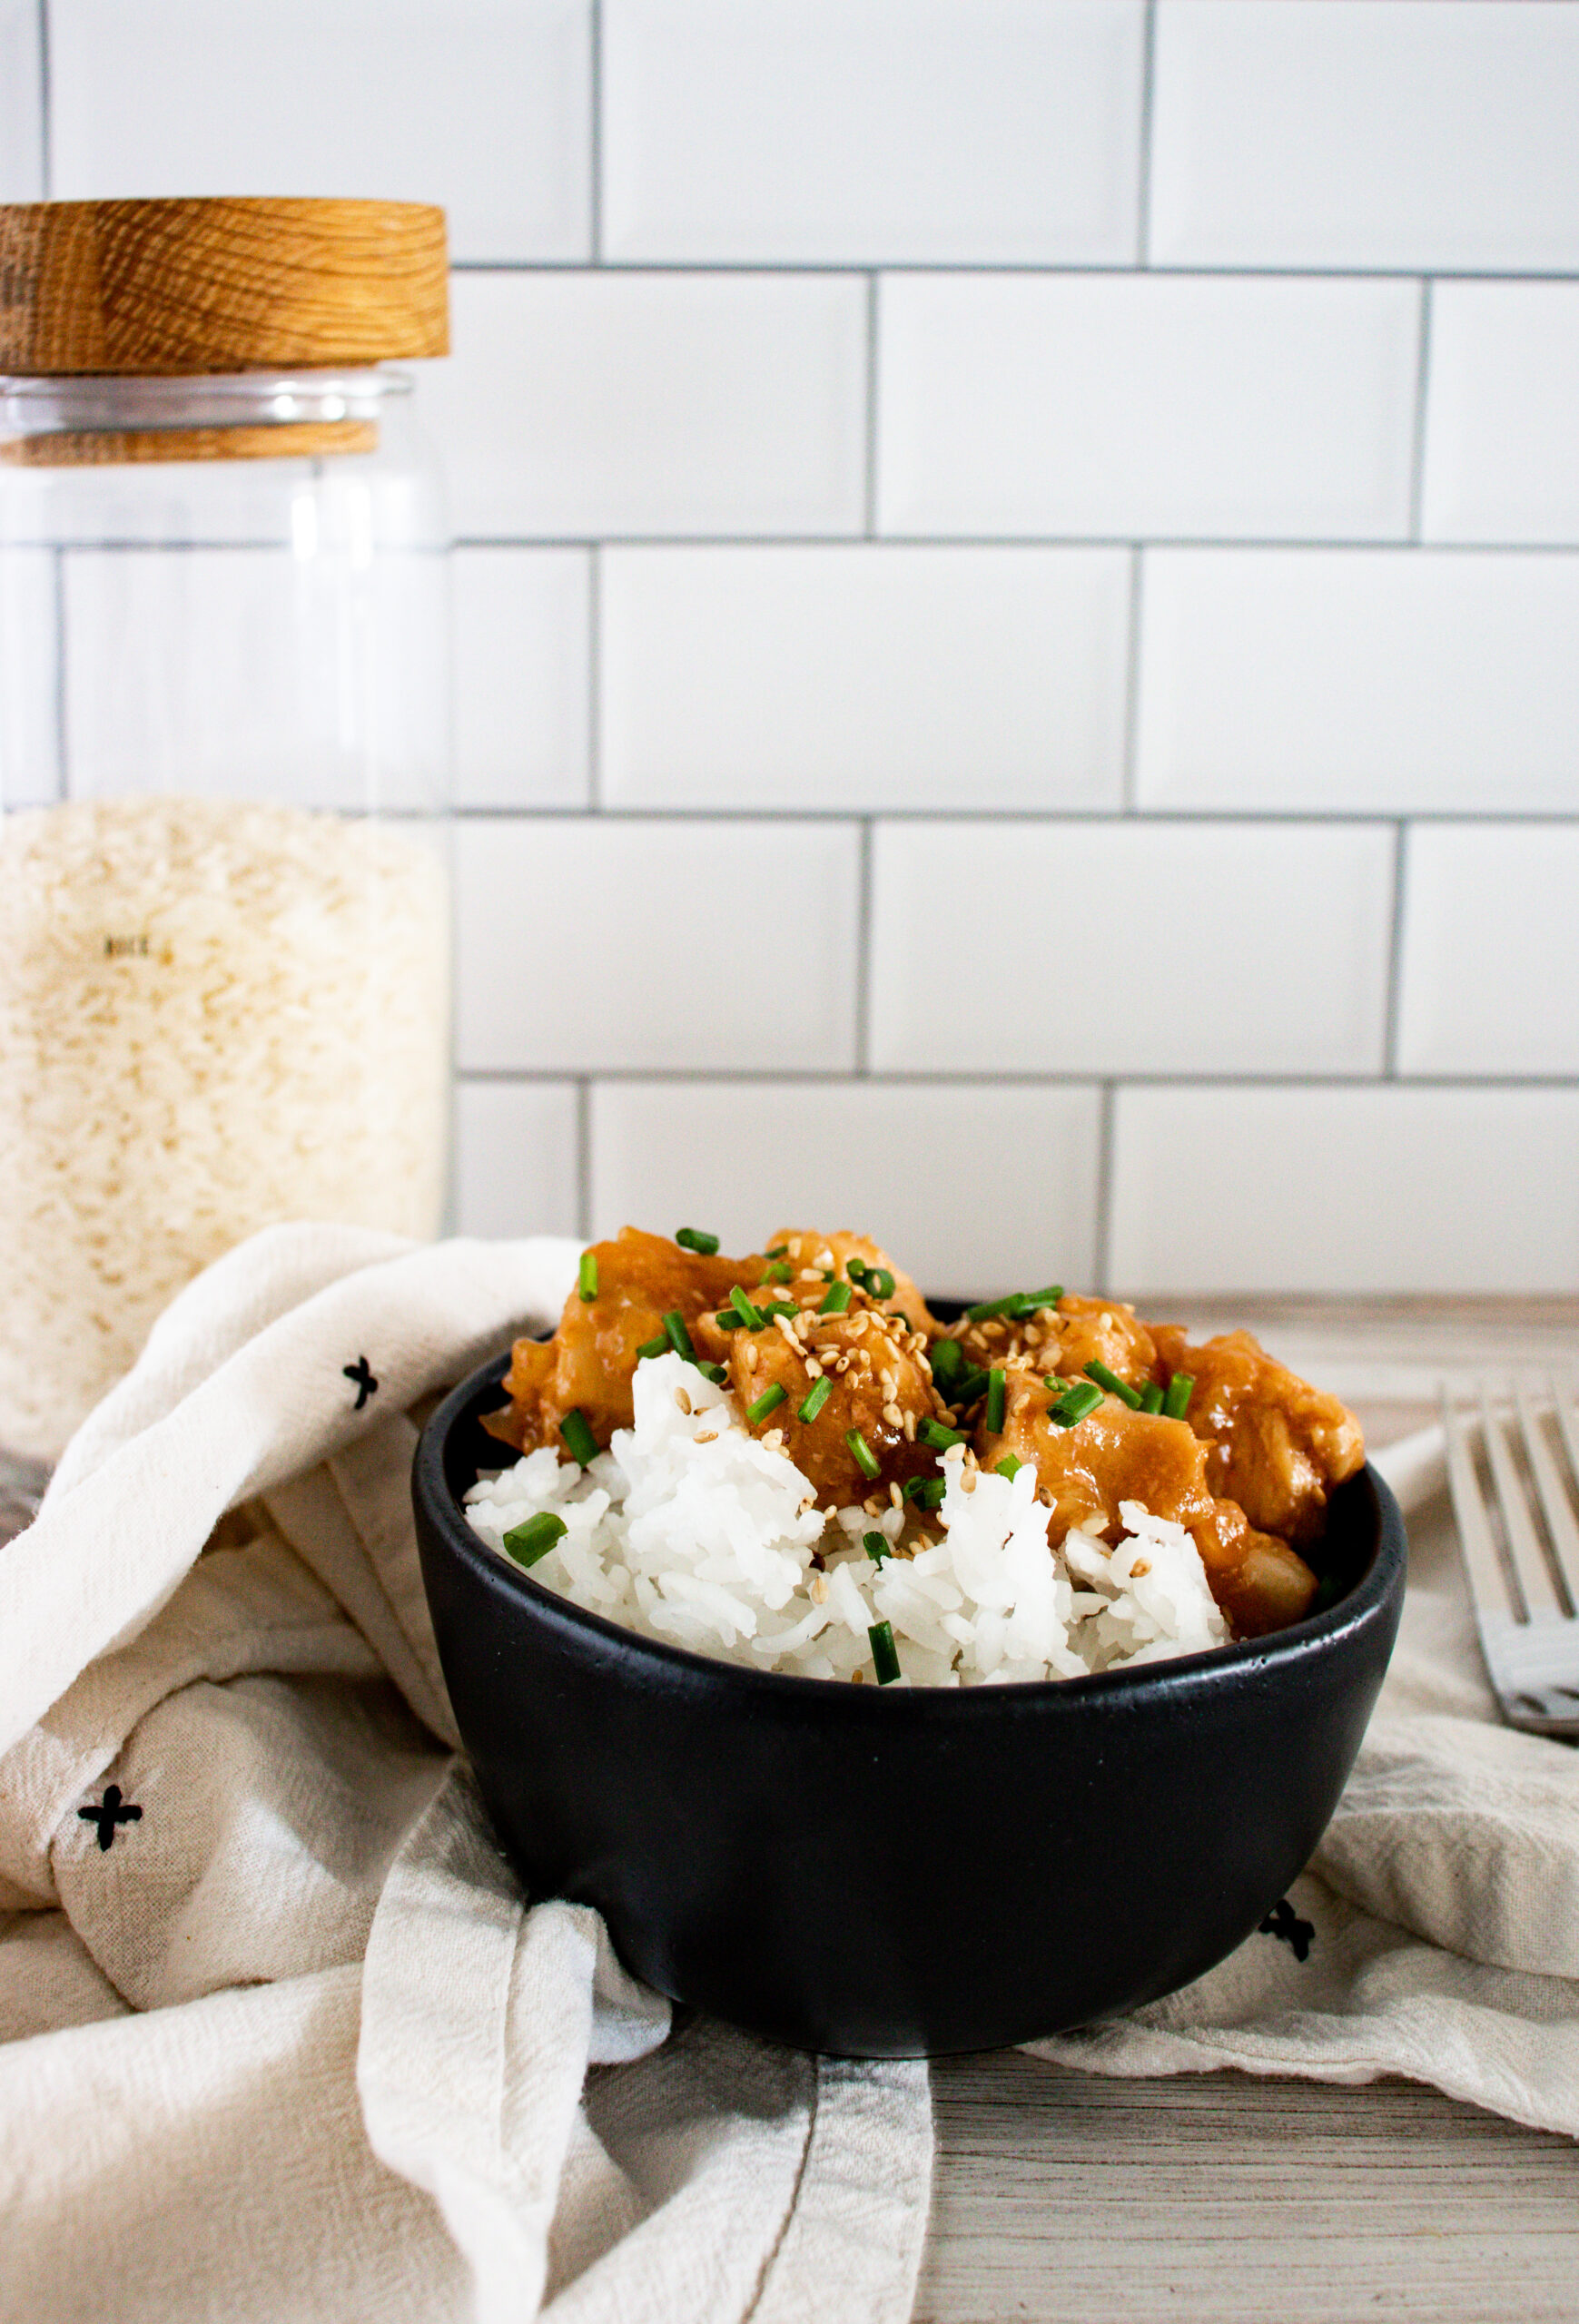 A black bowl of rice and teriyaki chicken with a white towel behind it with a fork and a container of rice behind it.